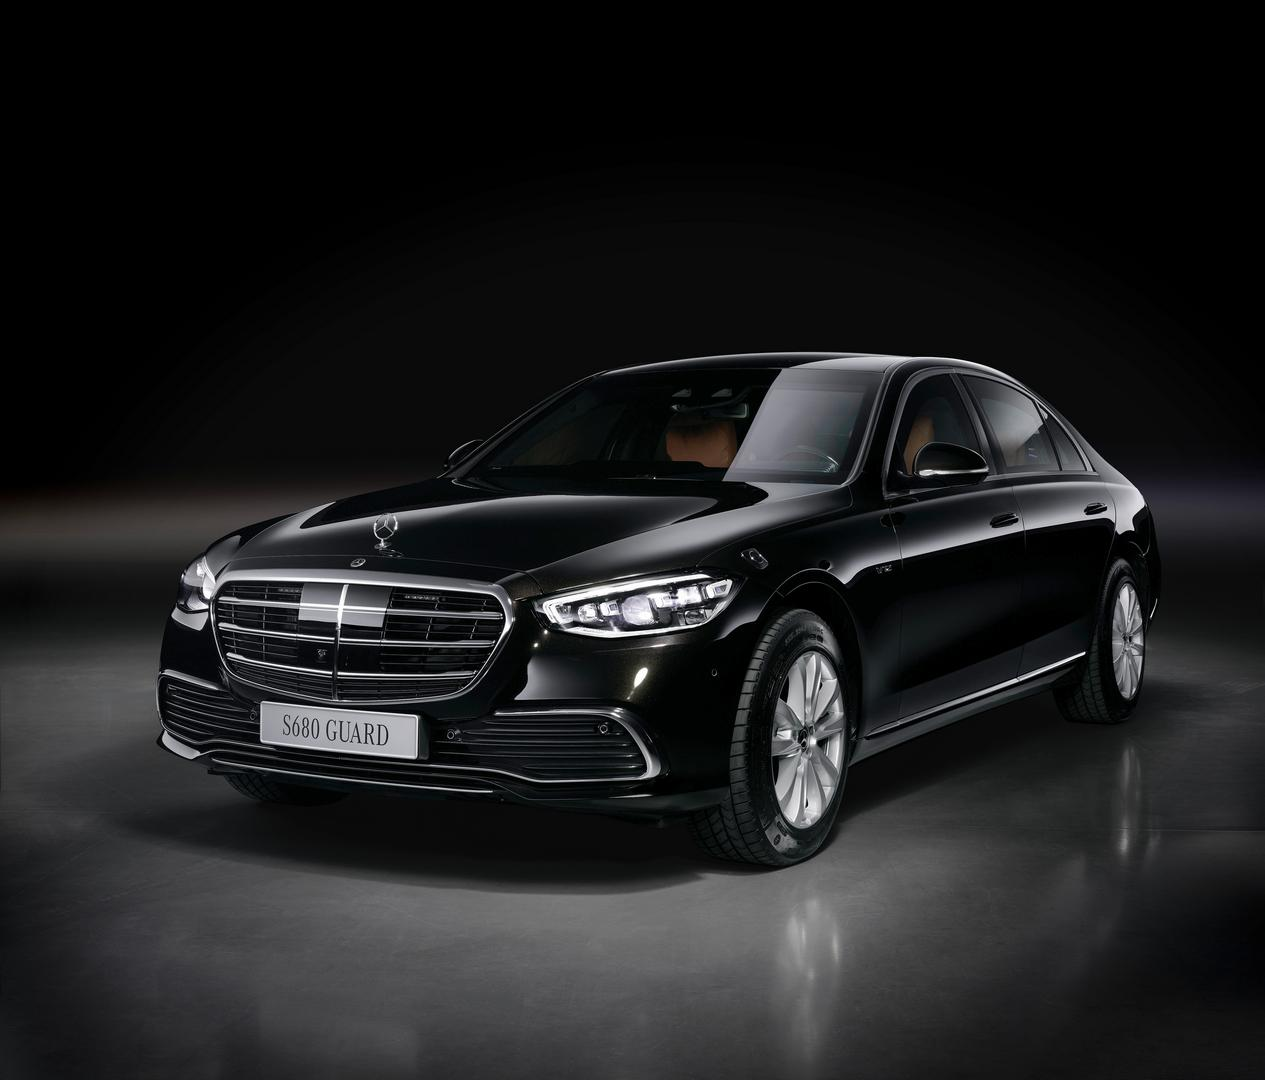 2022 Mercedes-Benz S680 Guard: Fully Armored S-Class for $535,000